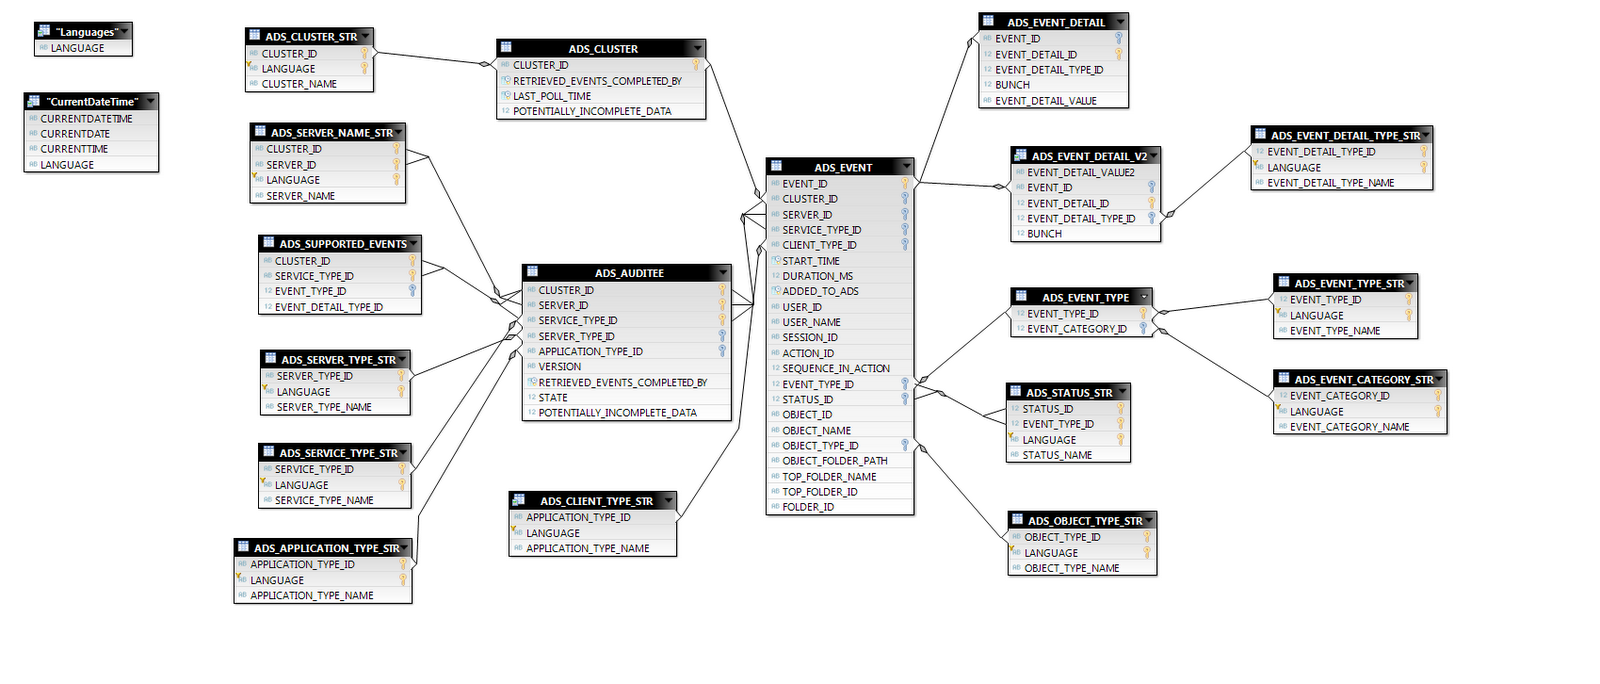 The story of auditing in SAP BI 4.0 | Business Objects